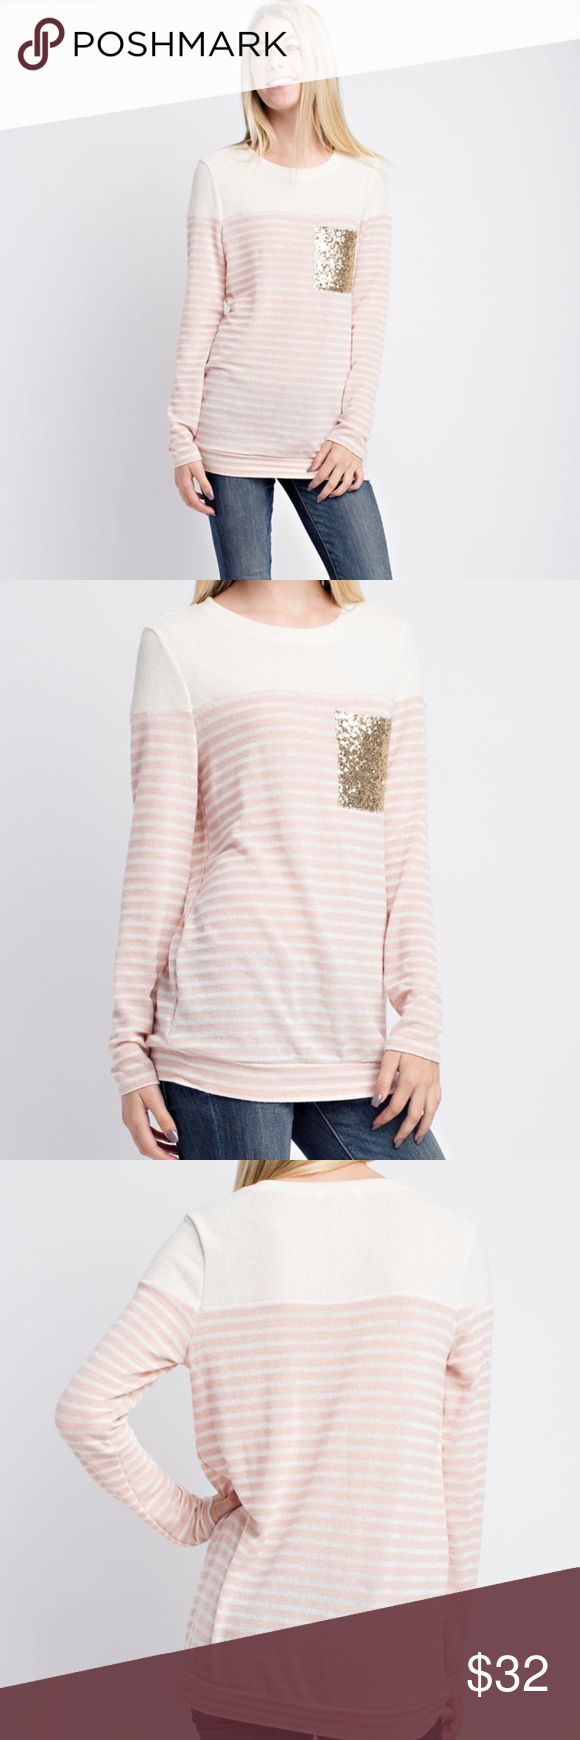 Bouvardia Long sleeve, peach striped sweater with a gold sequin breast square.  Color: Yellow undertones. See pictures.   Sizes: Small, Medium, Large   Fabric:  Condition: New with Tags    Please ask all questions before purchase. Bundle Discount: 10% on 2+ items. Typically ships within 24 hours.   Follow along on Instagram, Snapchat, Twitter & Facebook: @flowersandgray    xo, Jess   Internal Use: BVA-132227 Flowers and Gray Sweaters